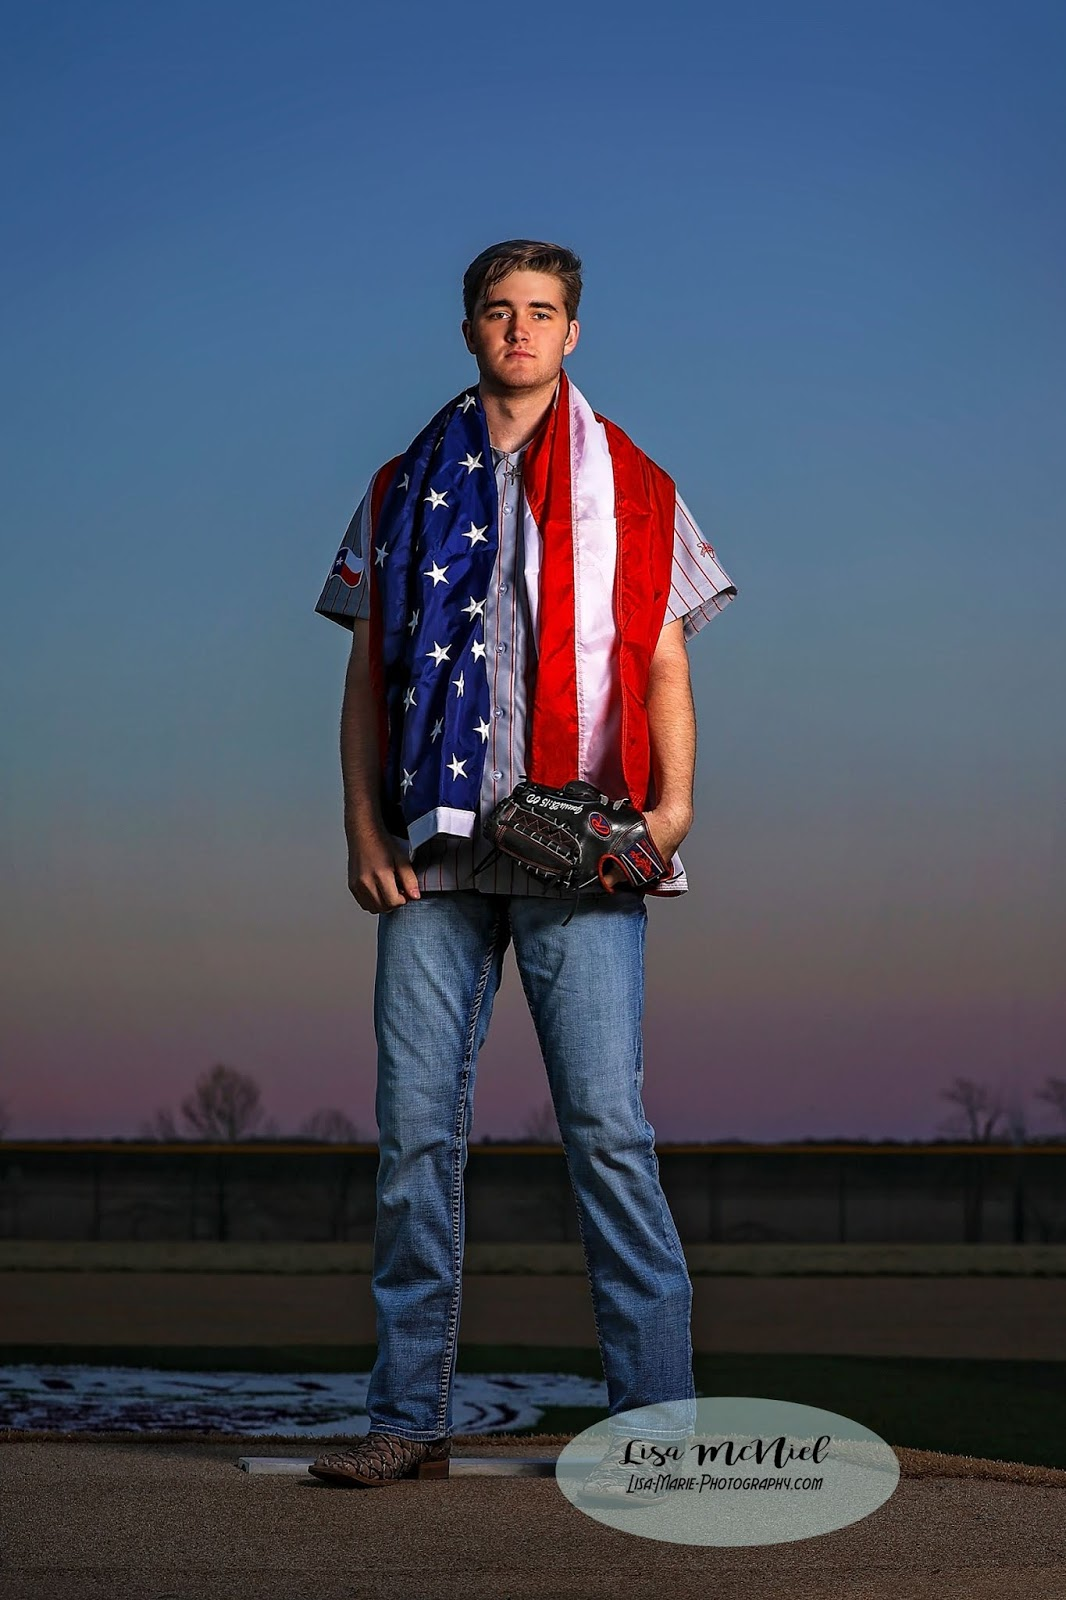 handsome young man in baseball uniform at night with flag around shoulders